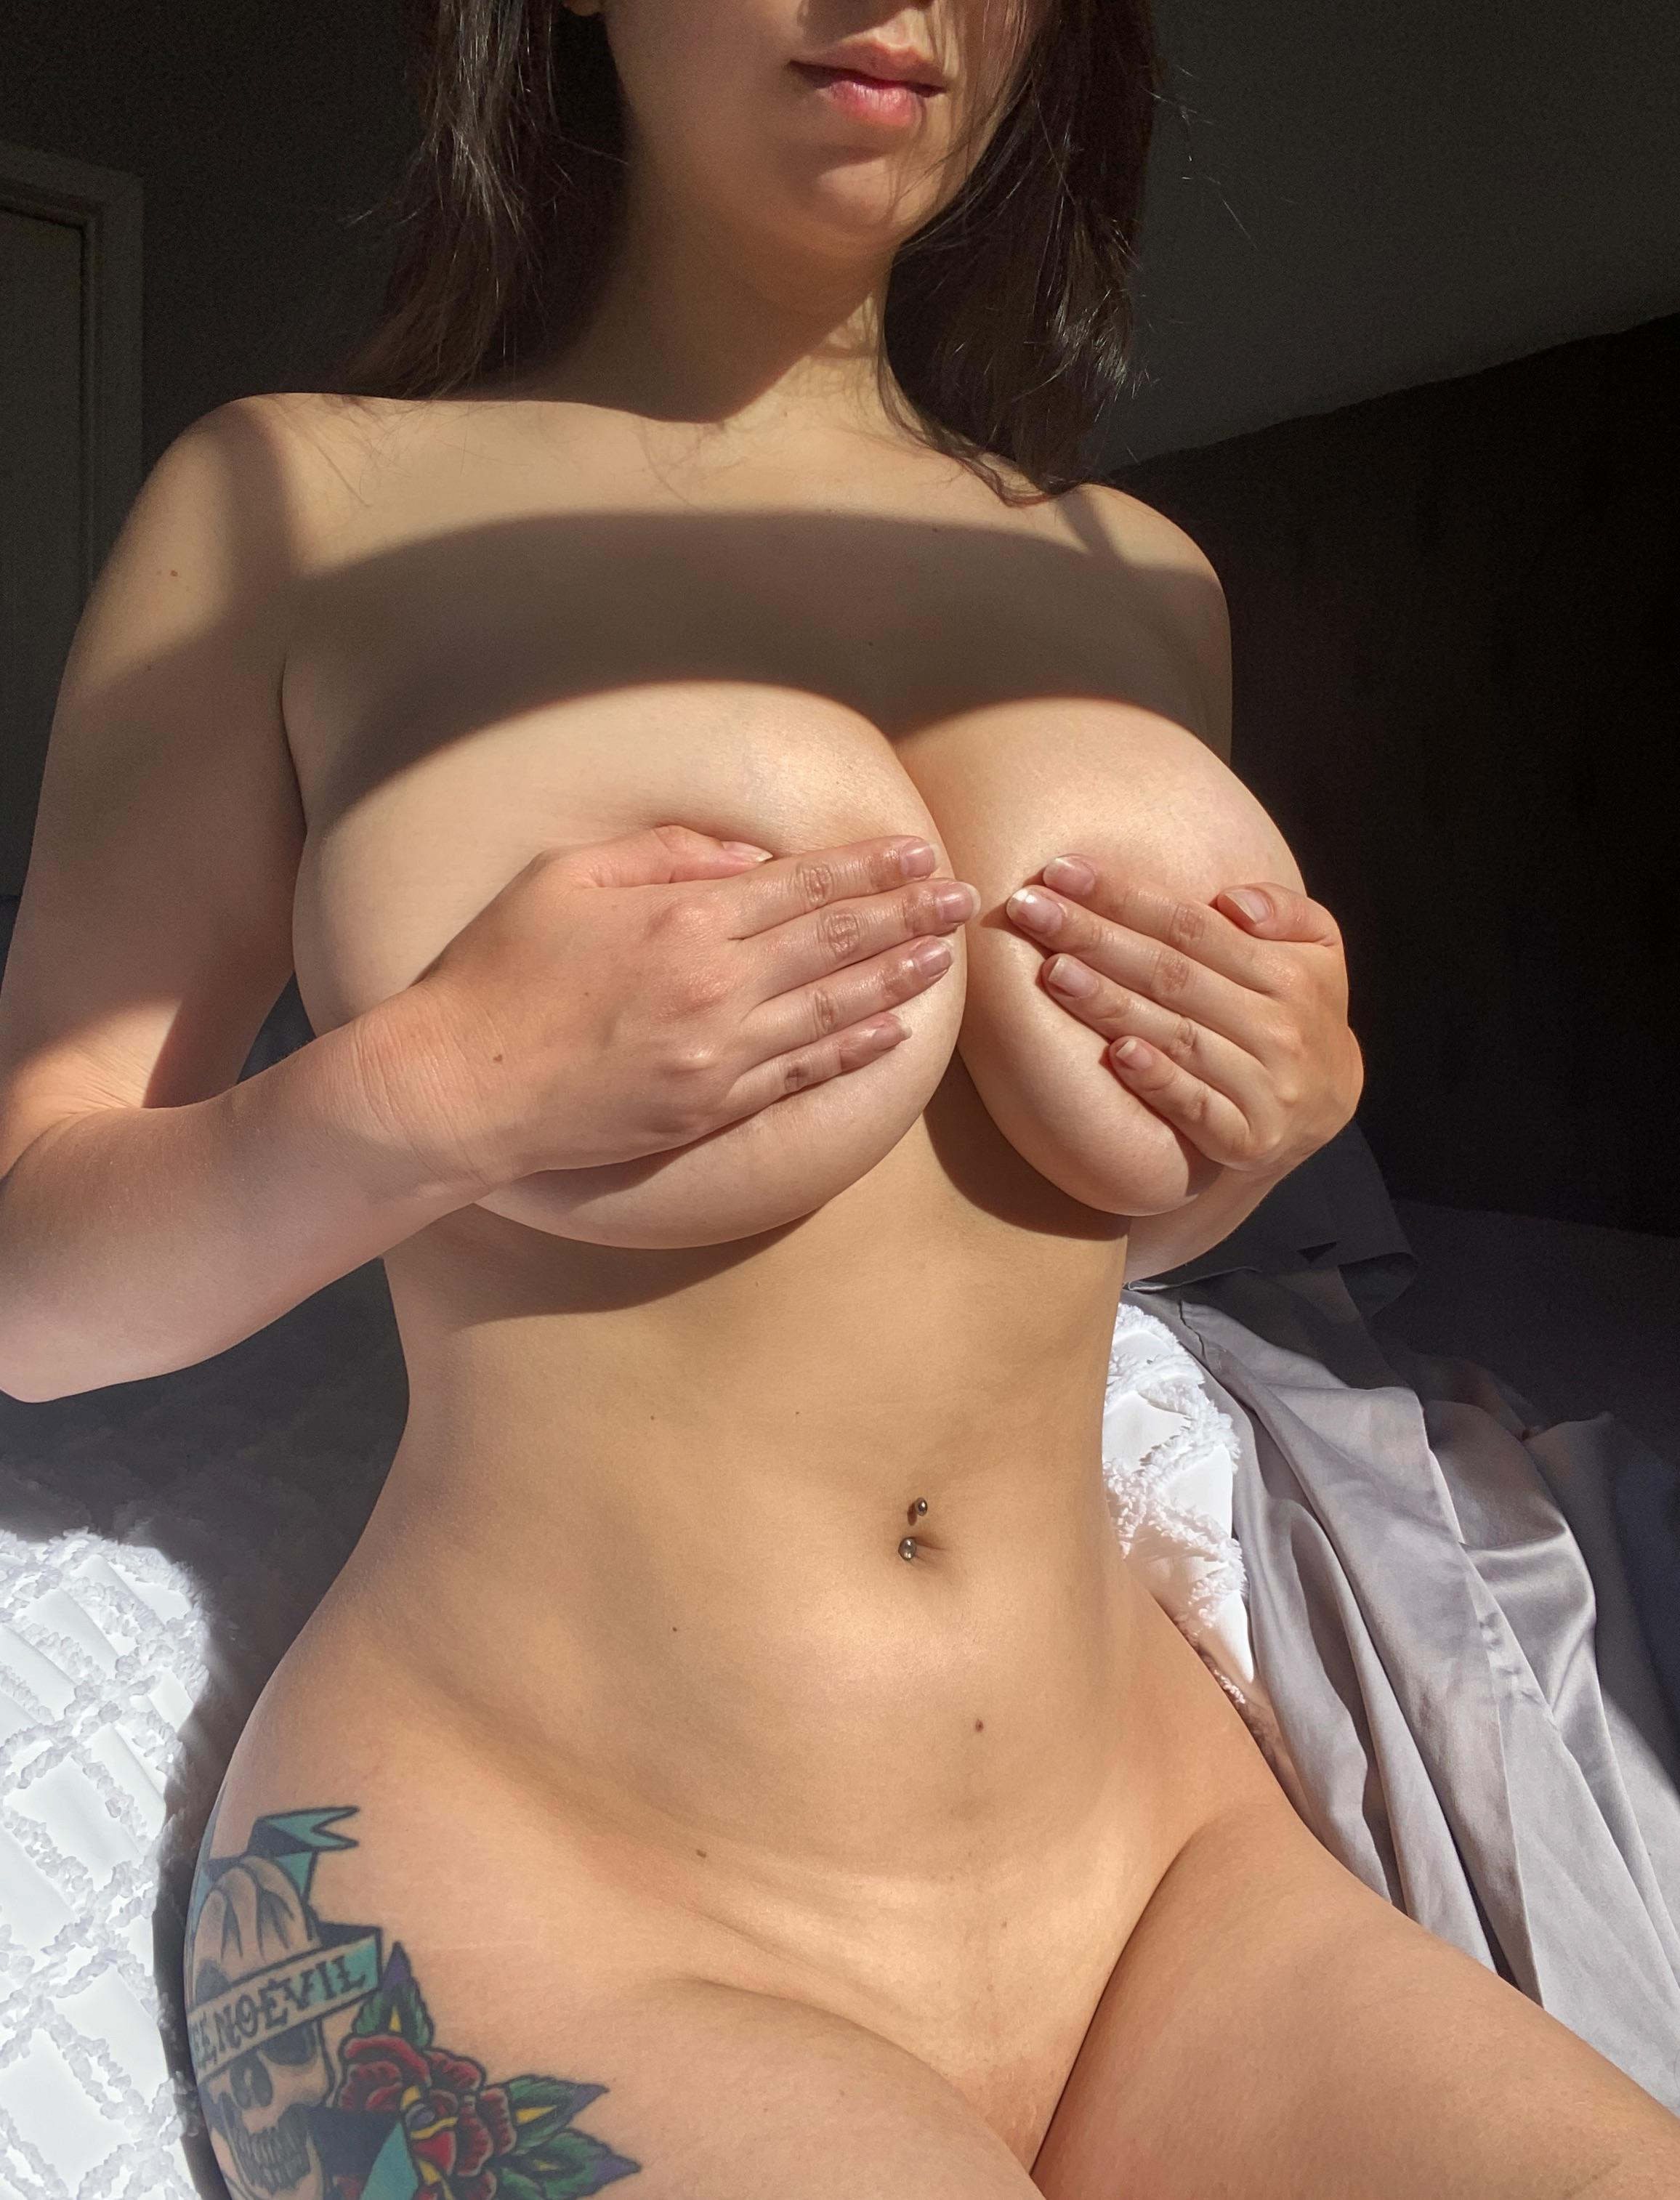 One of our naked asian pics called Which part of me are you cumming on first?